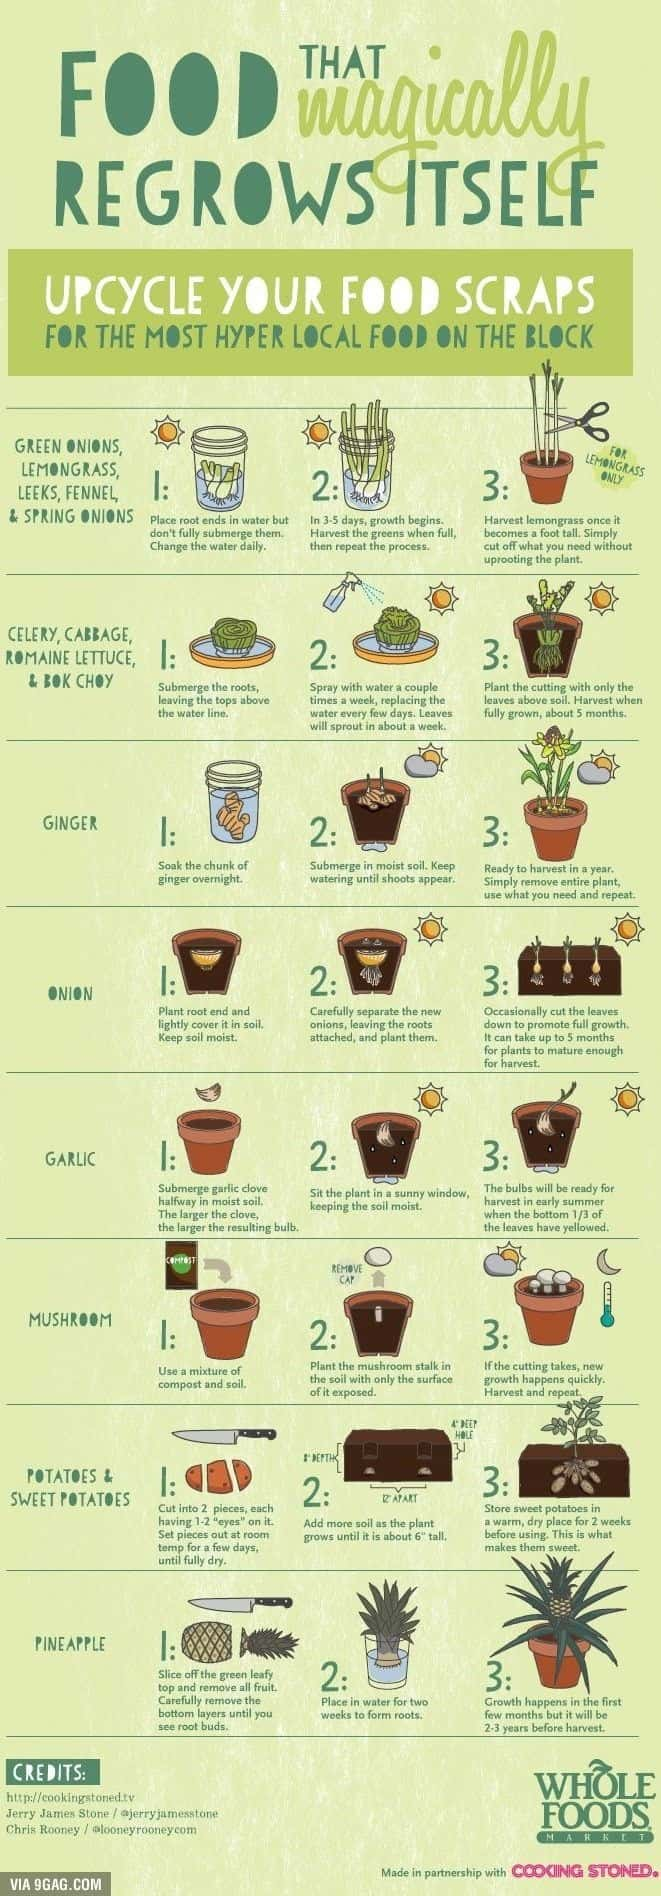 upcycle foods, chart that shows how to recycle foods